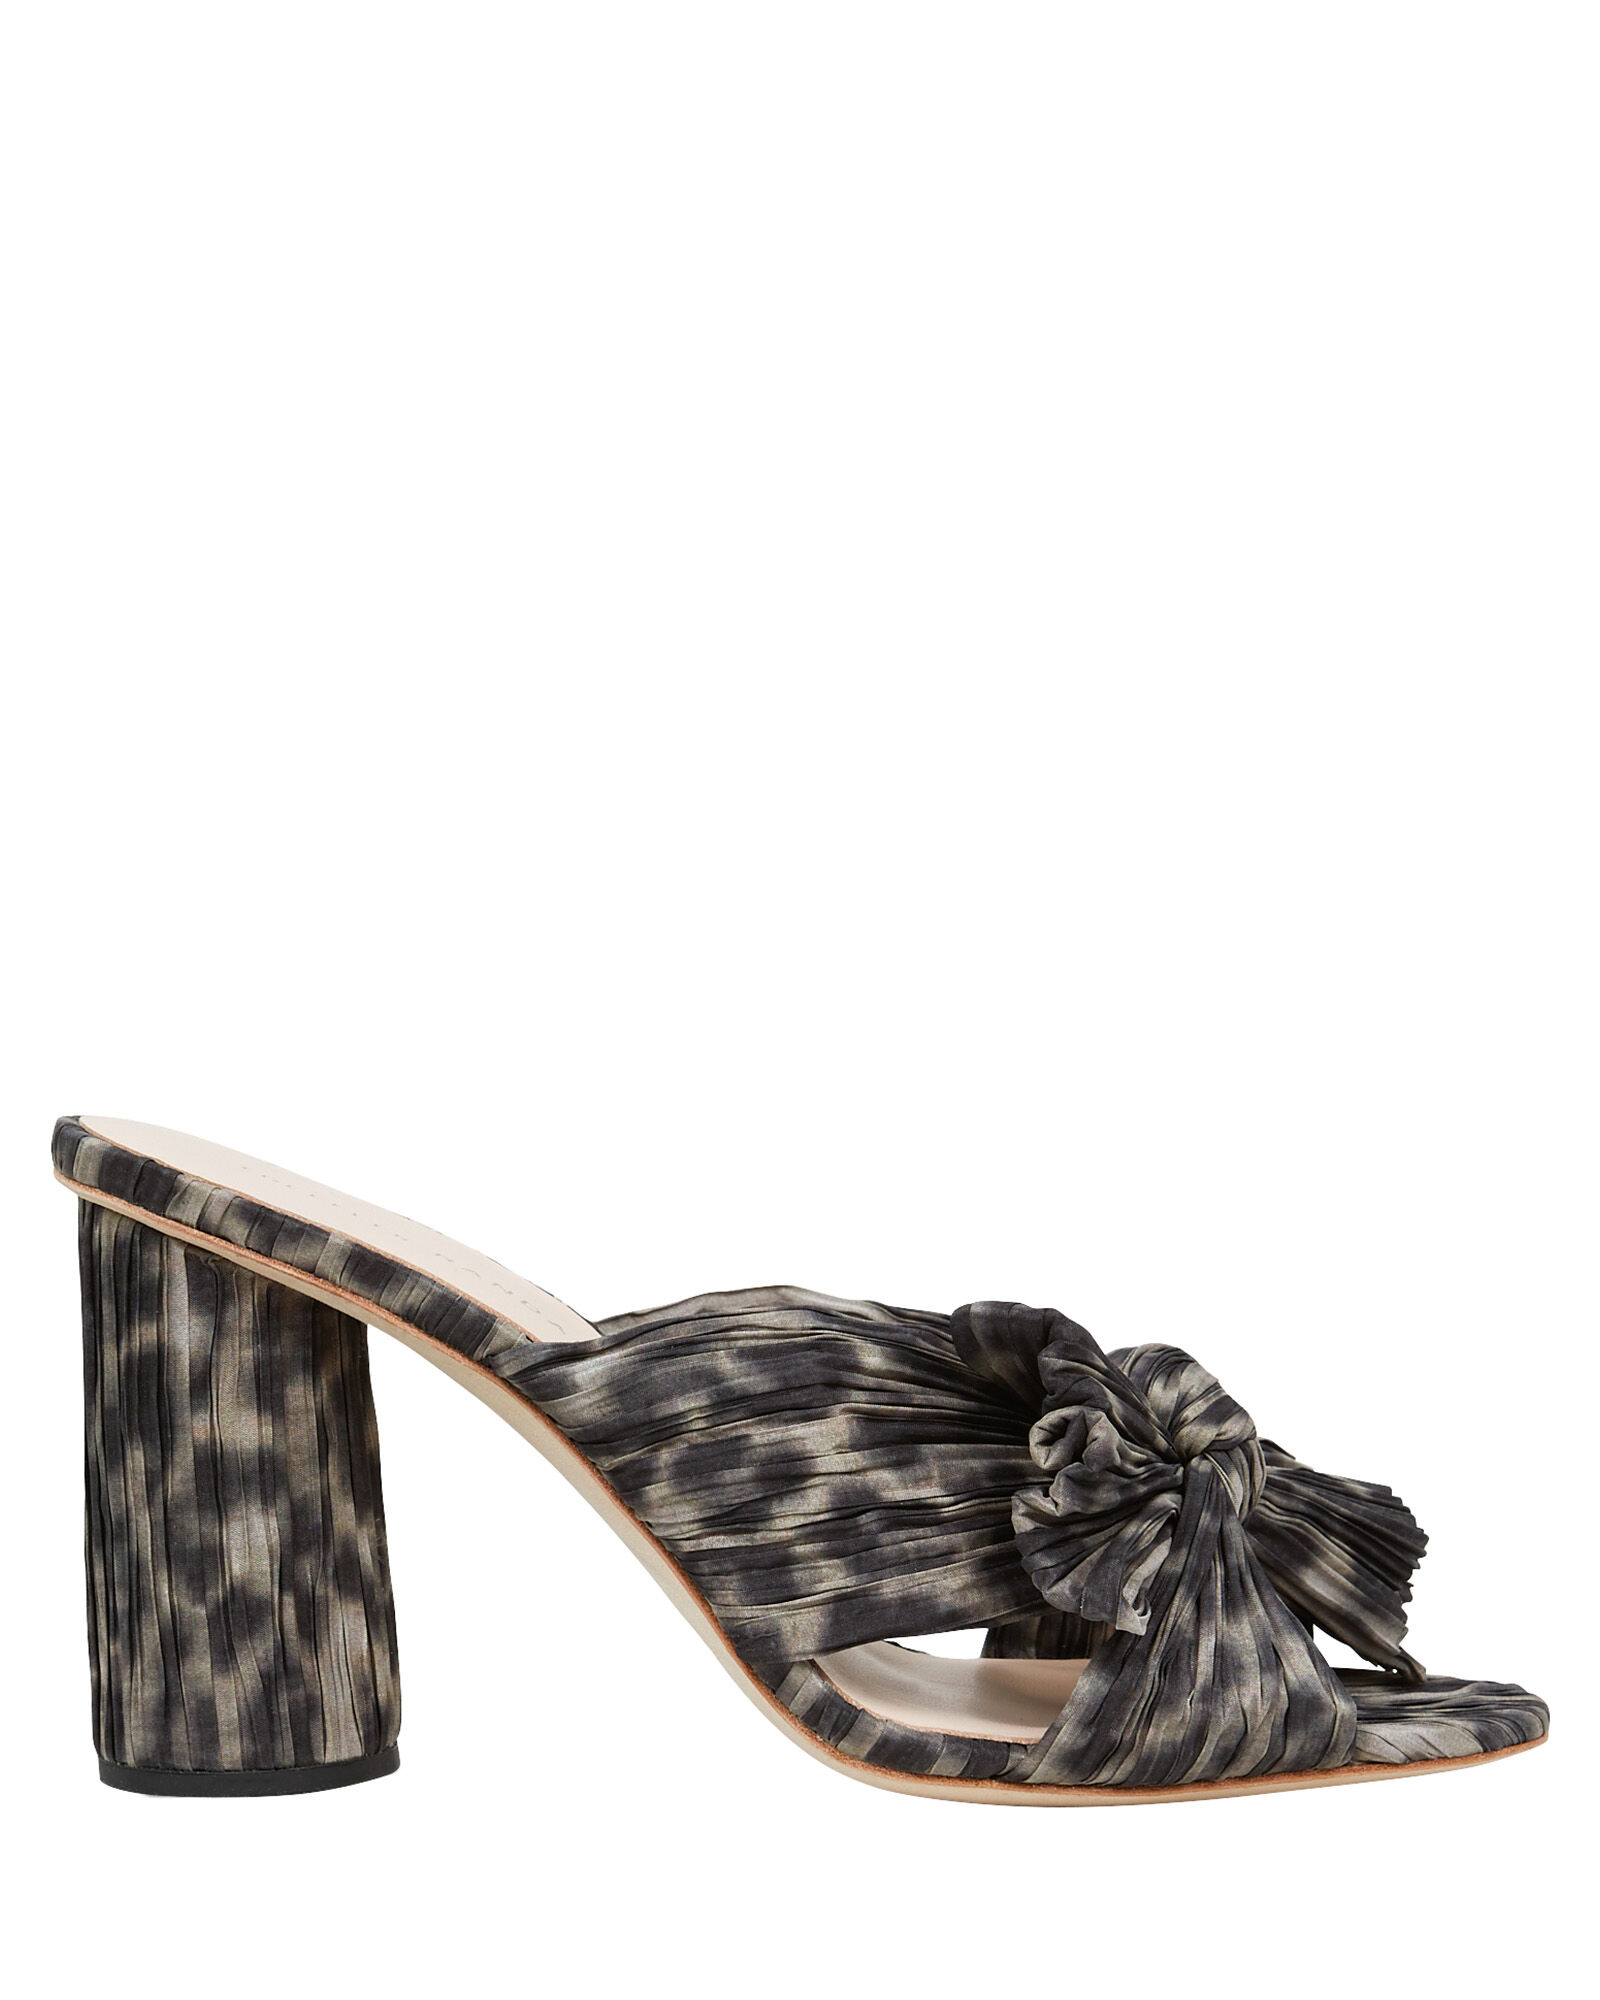 Penny Knotted Leopard Slide Sandals, BROWN, hi-res